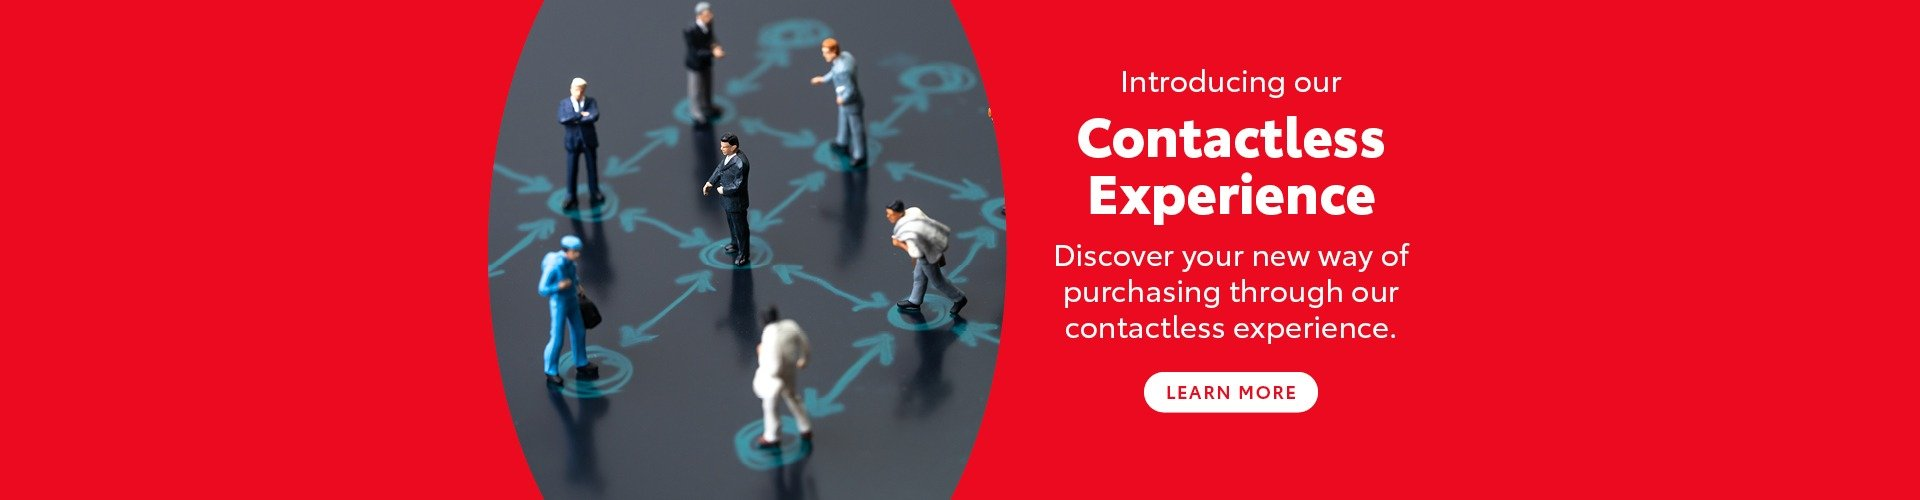 Contacless Experience - Croydon Toyota